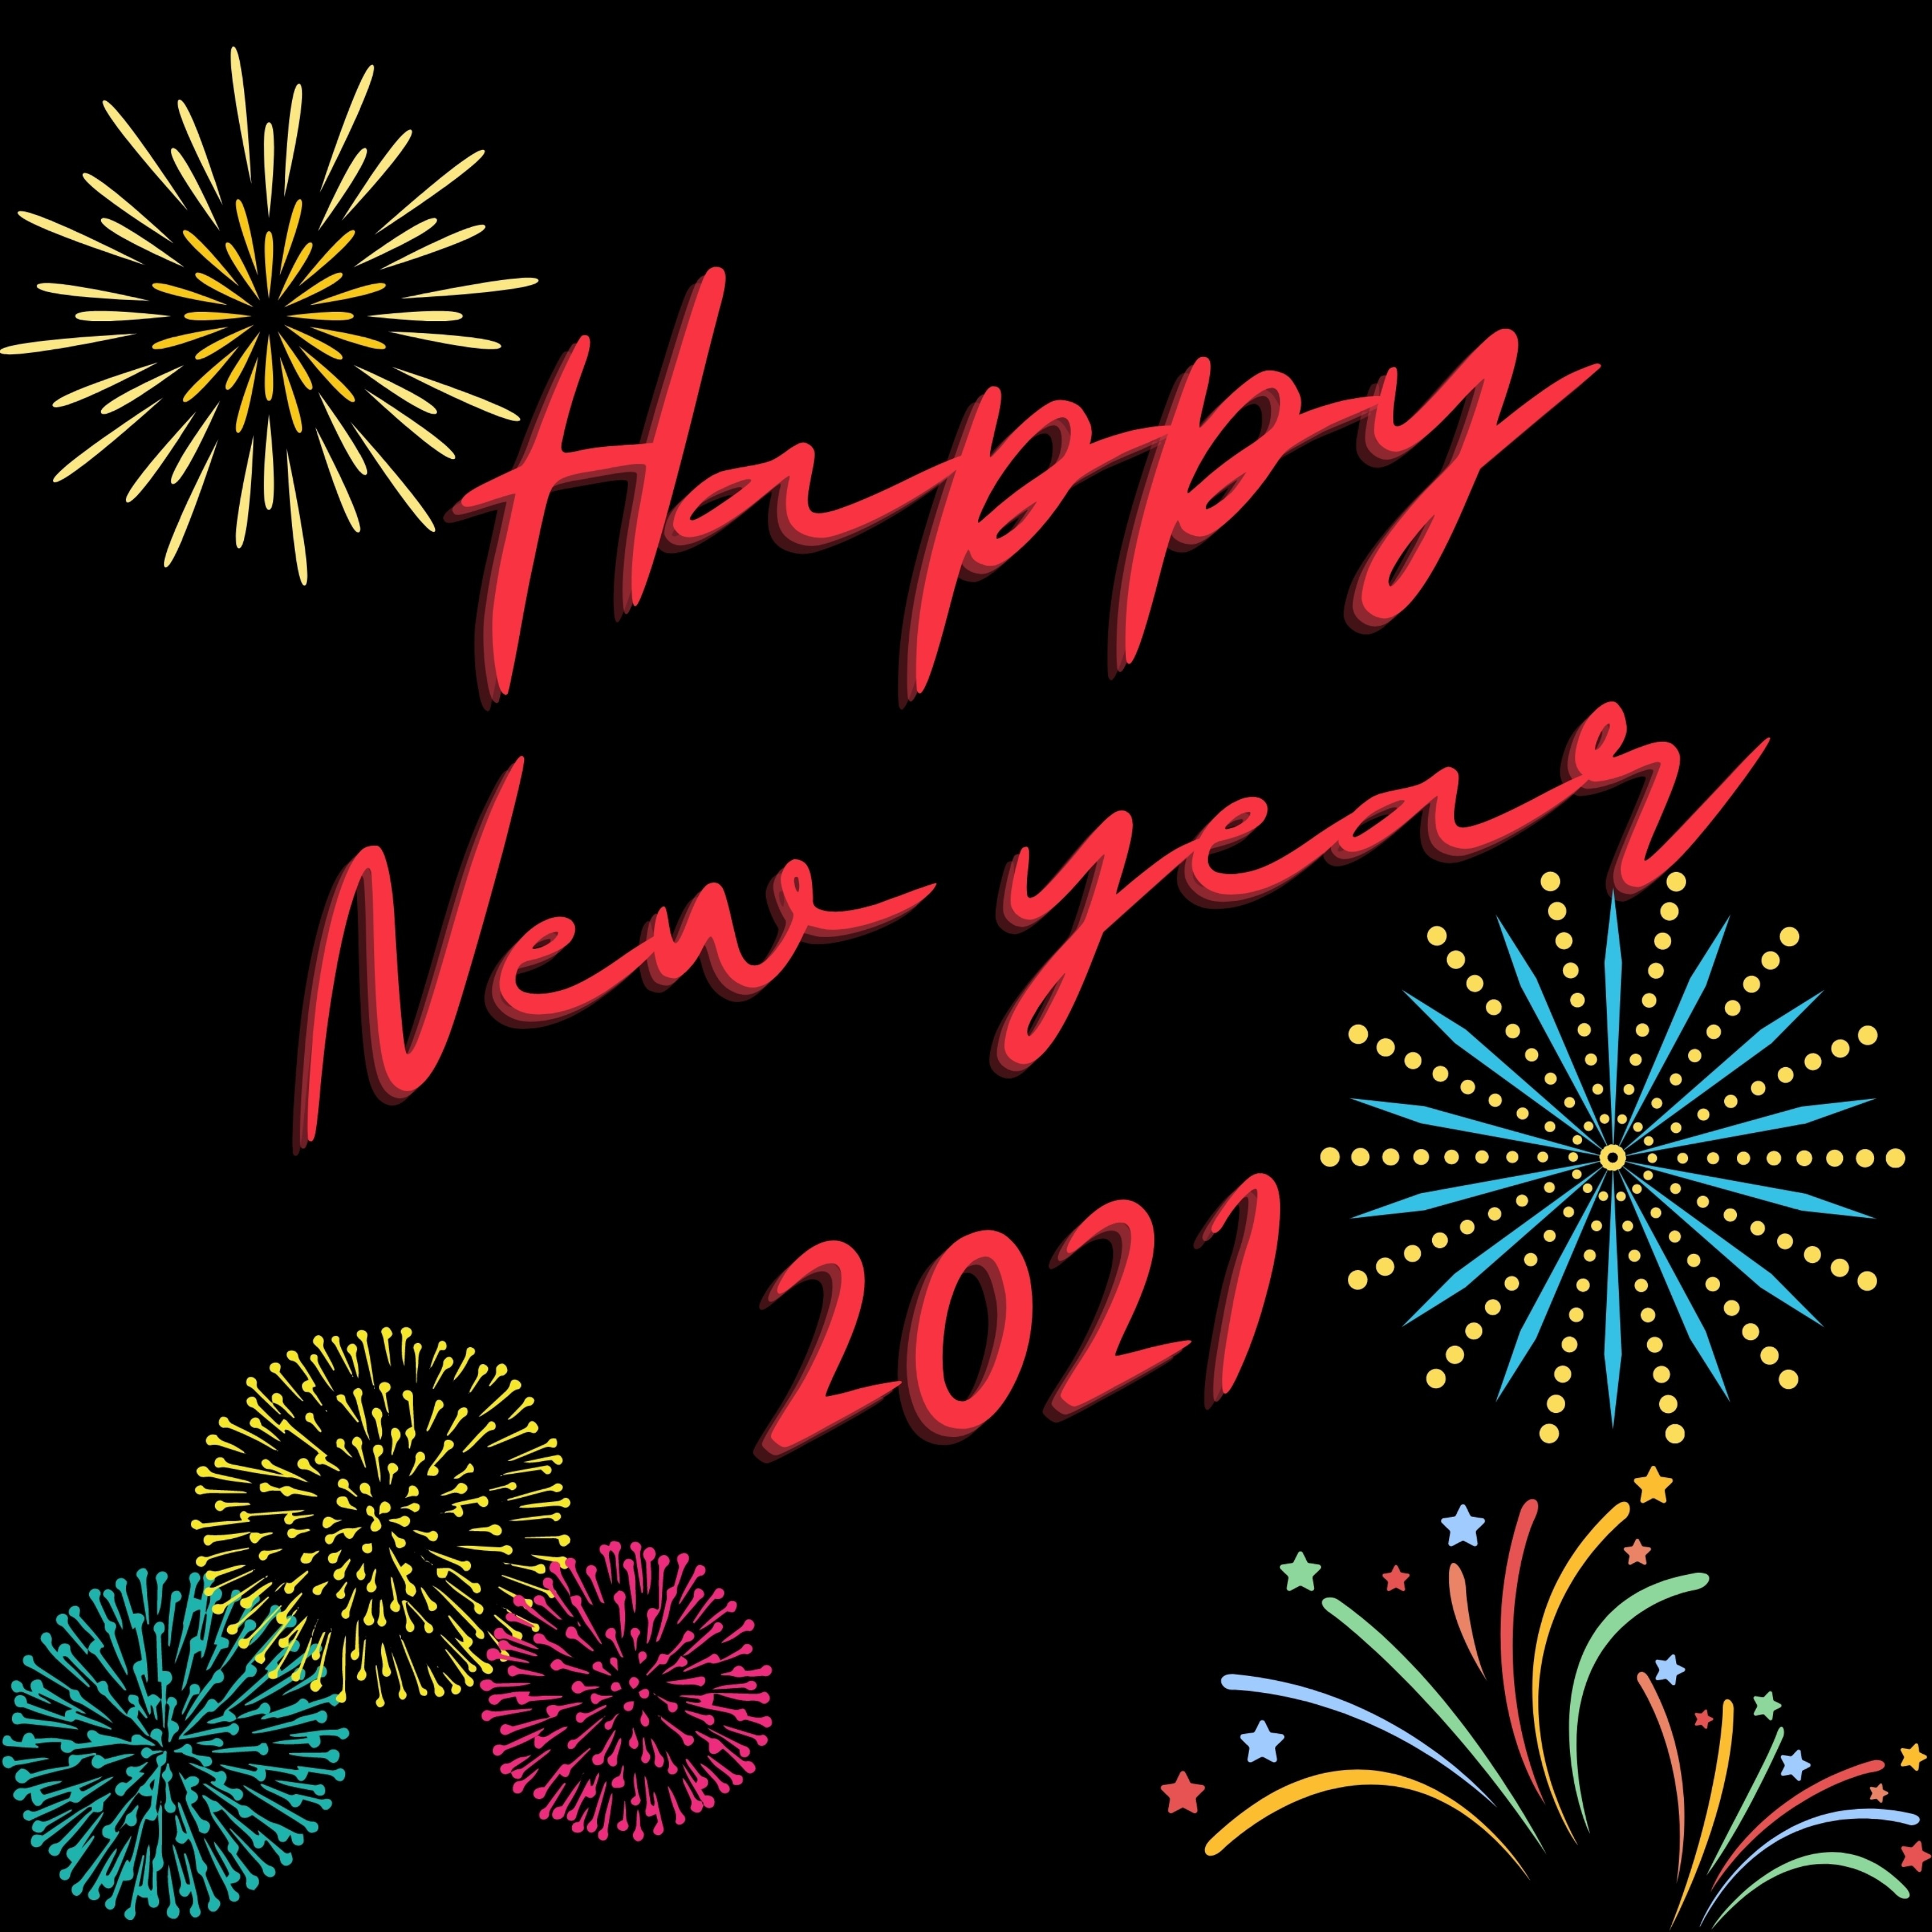 Happy New Year 2021 iPad Wallpaper